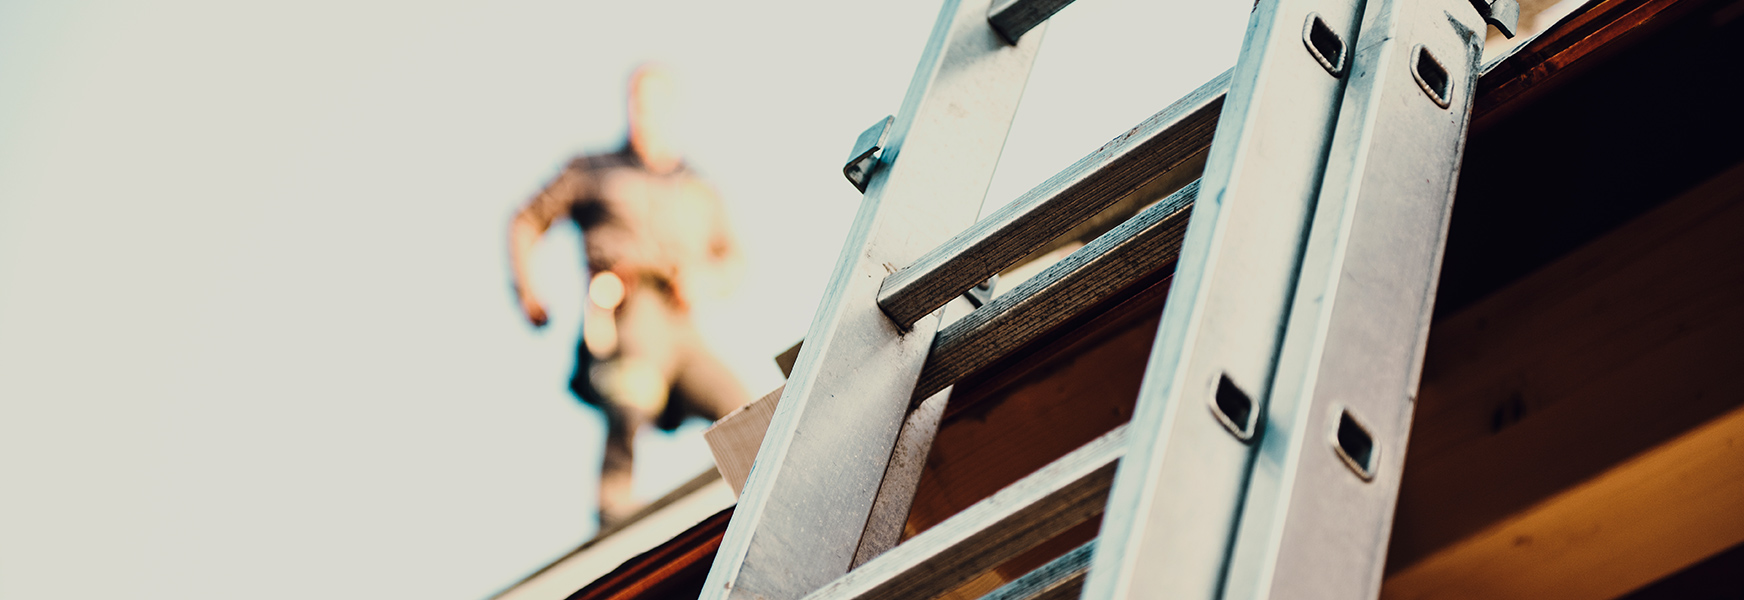 Ladder leaning on a building, out of focus worker walks on roof in background